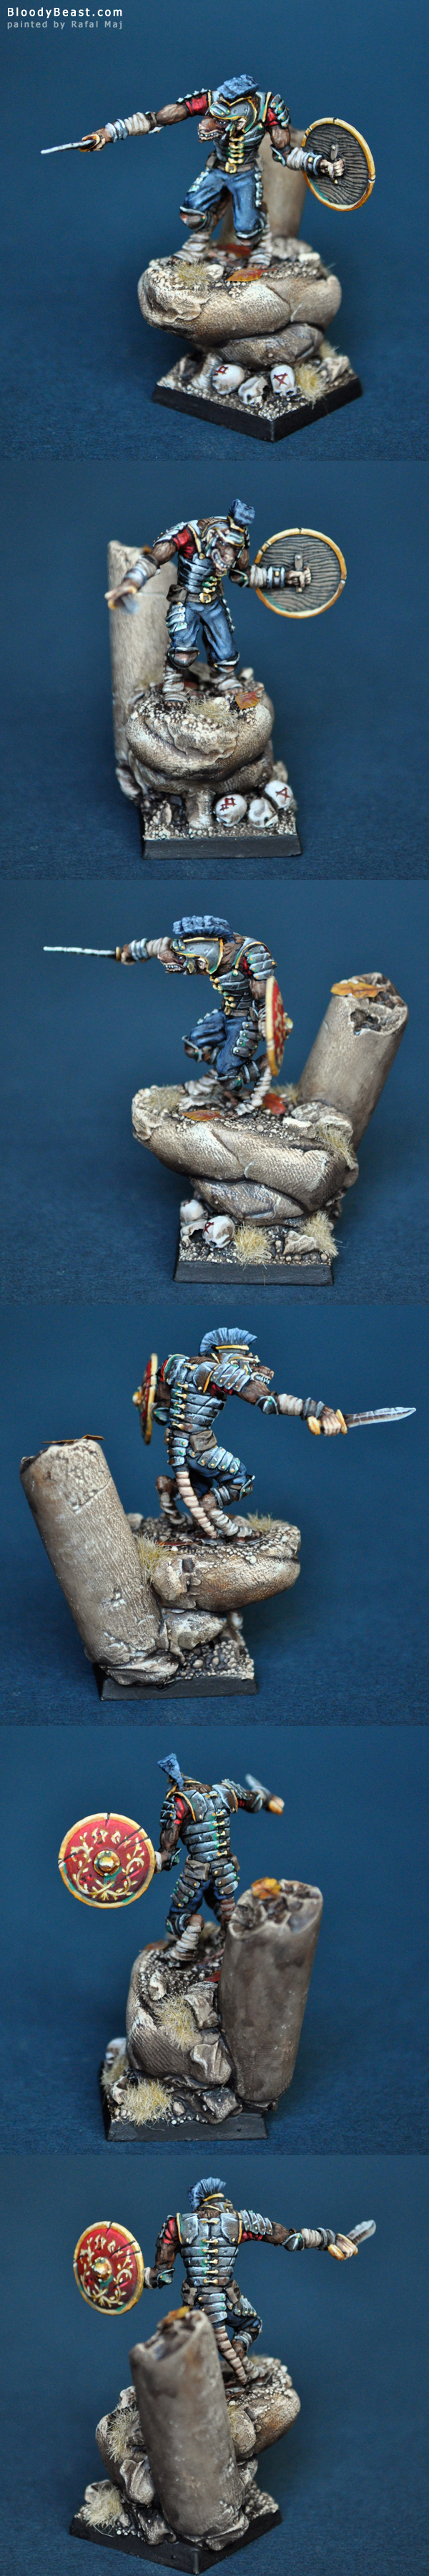 My entry for Black Knight Games Contest #1 painted by Rafal Maj (BloodyBeast.com)